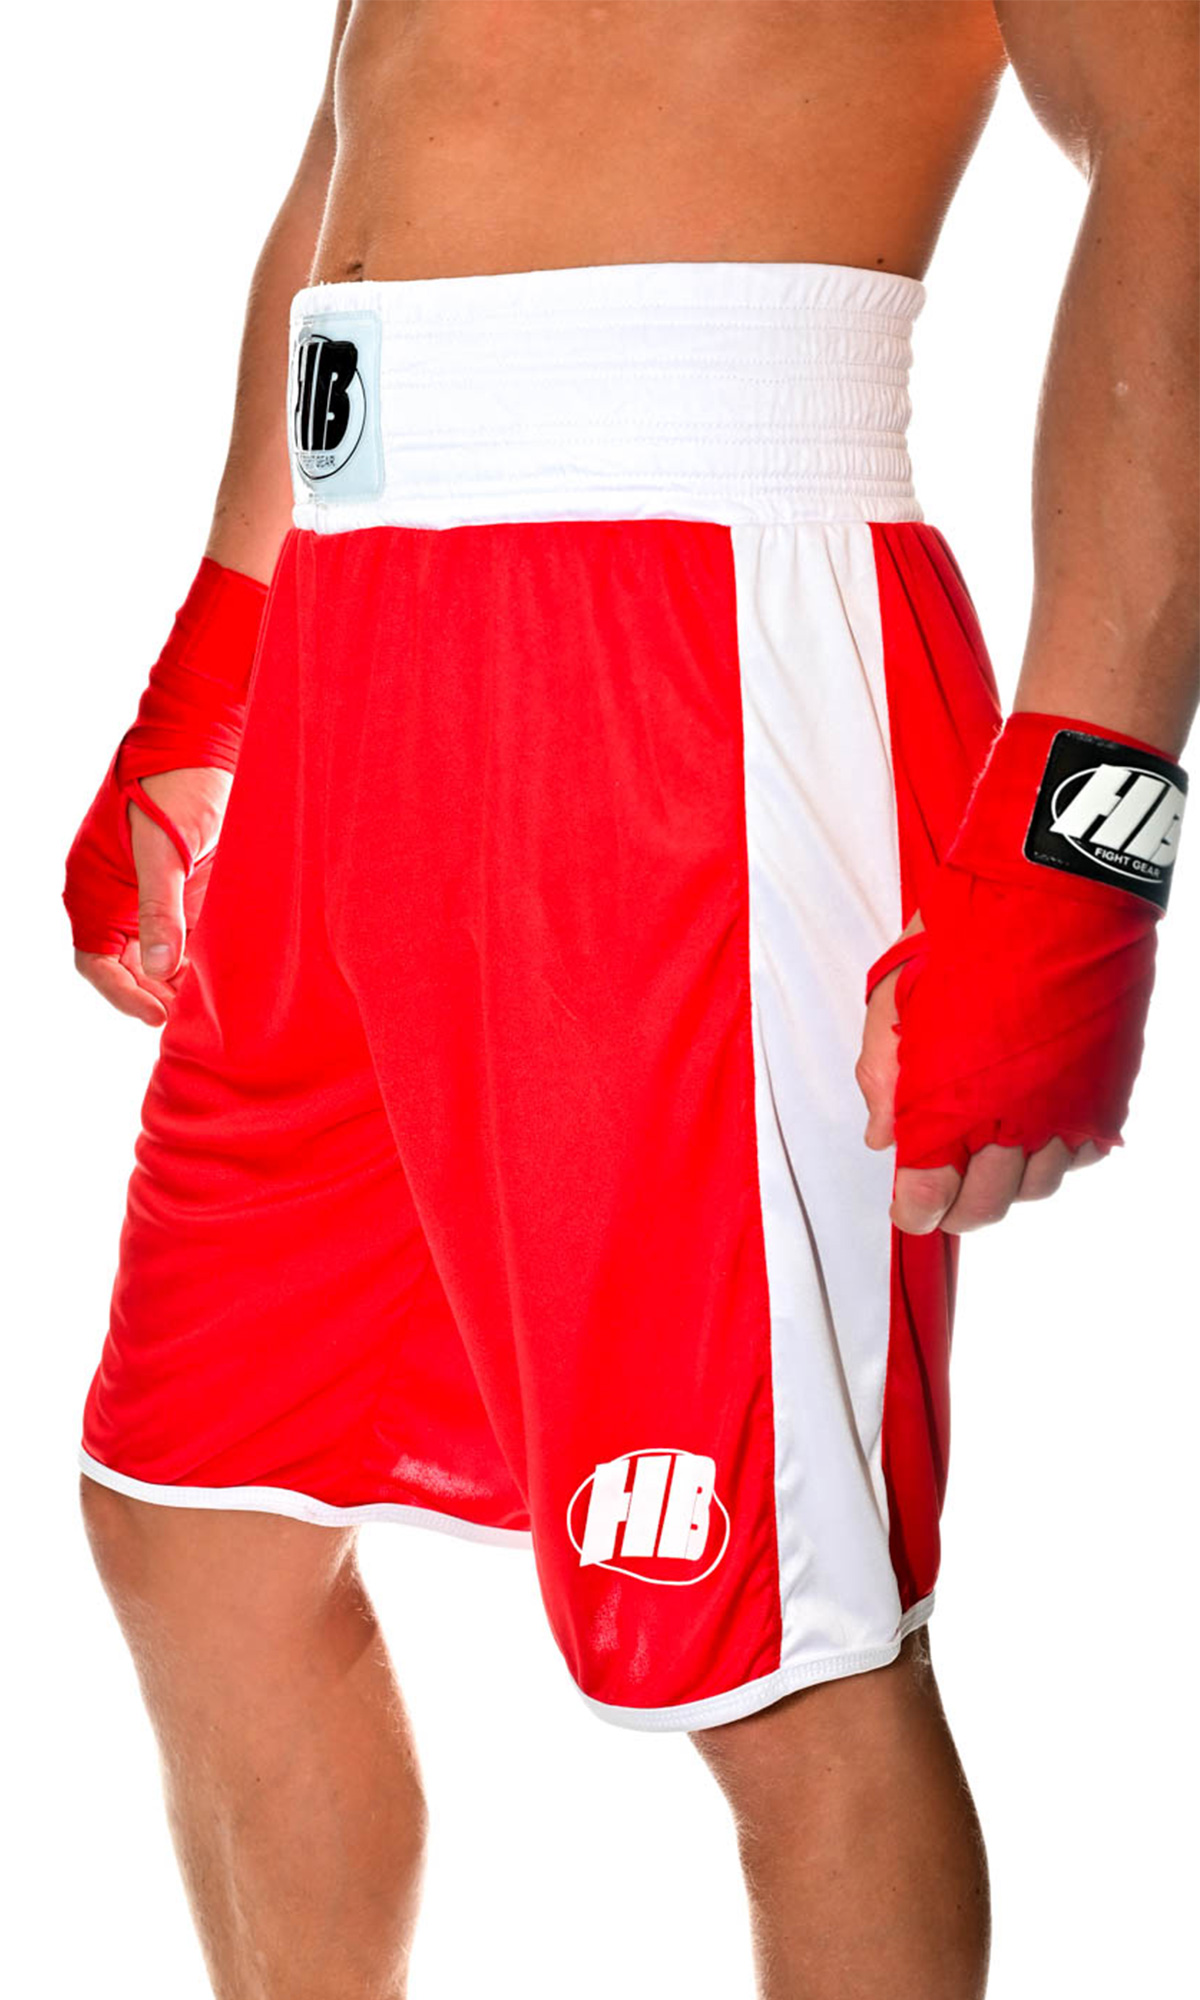 side-boxing-red-shorts